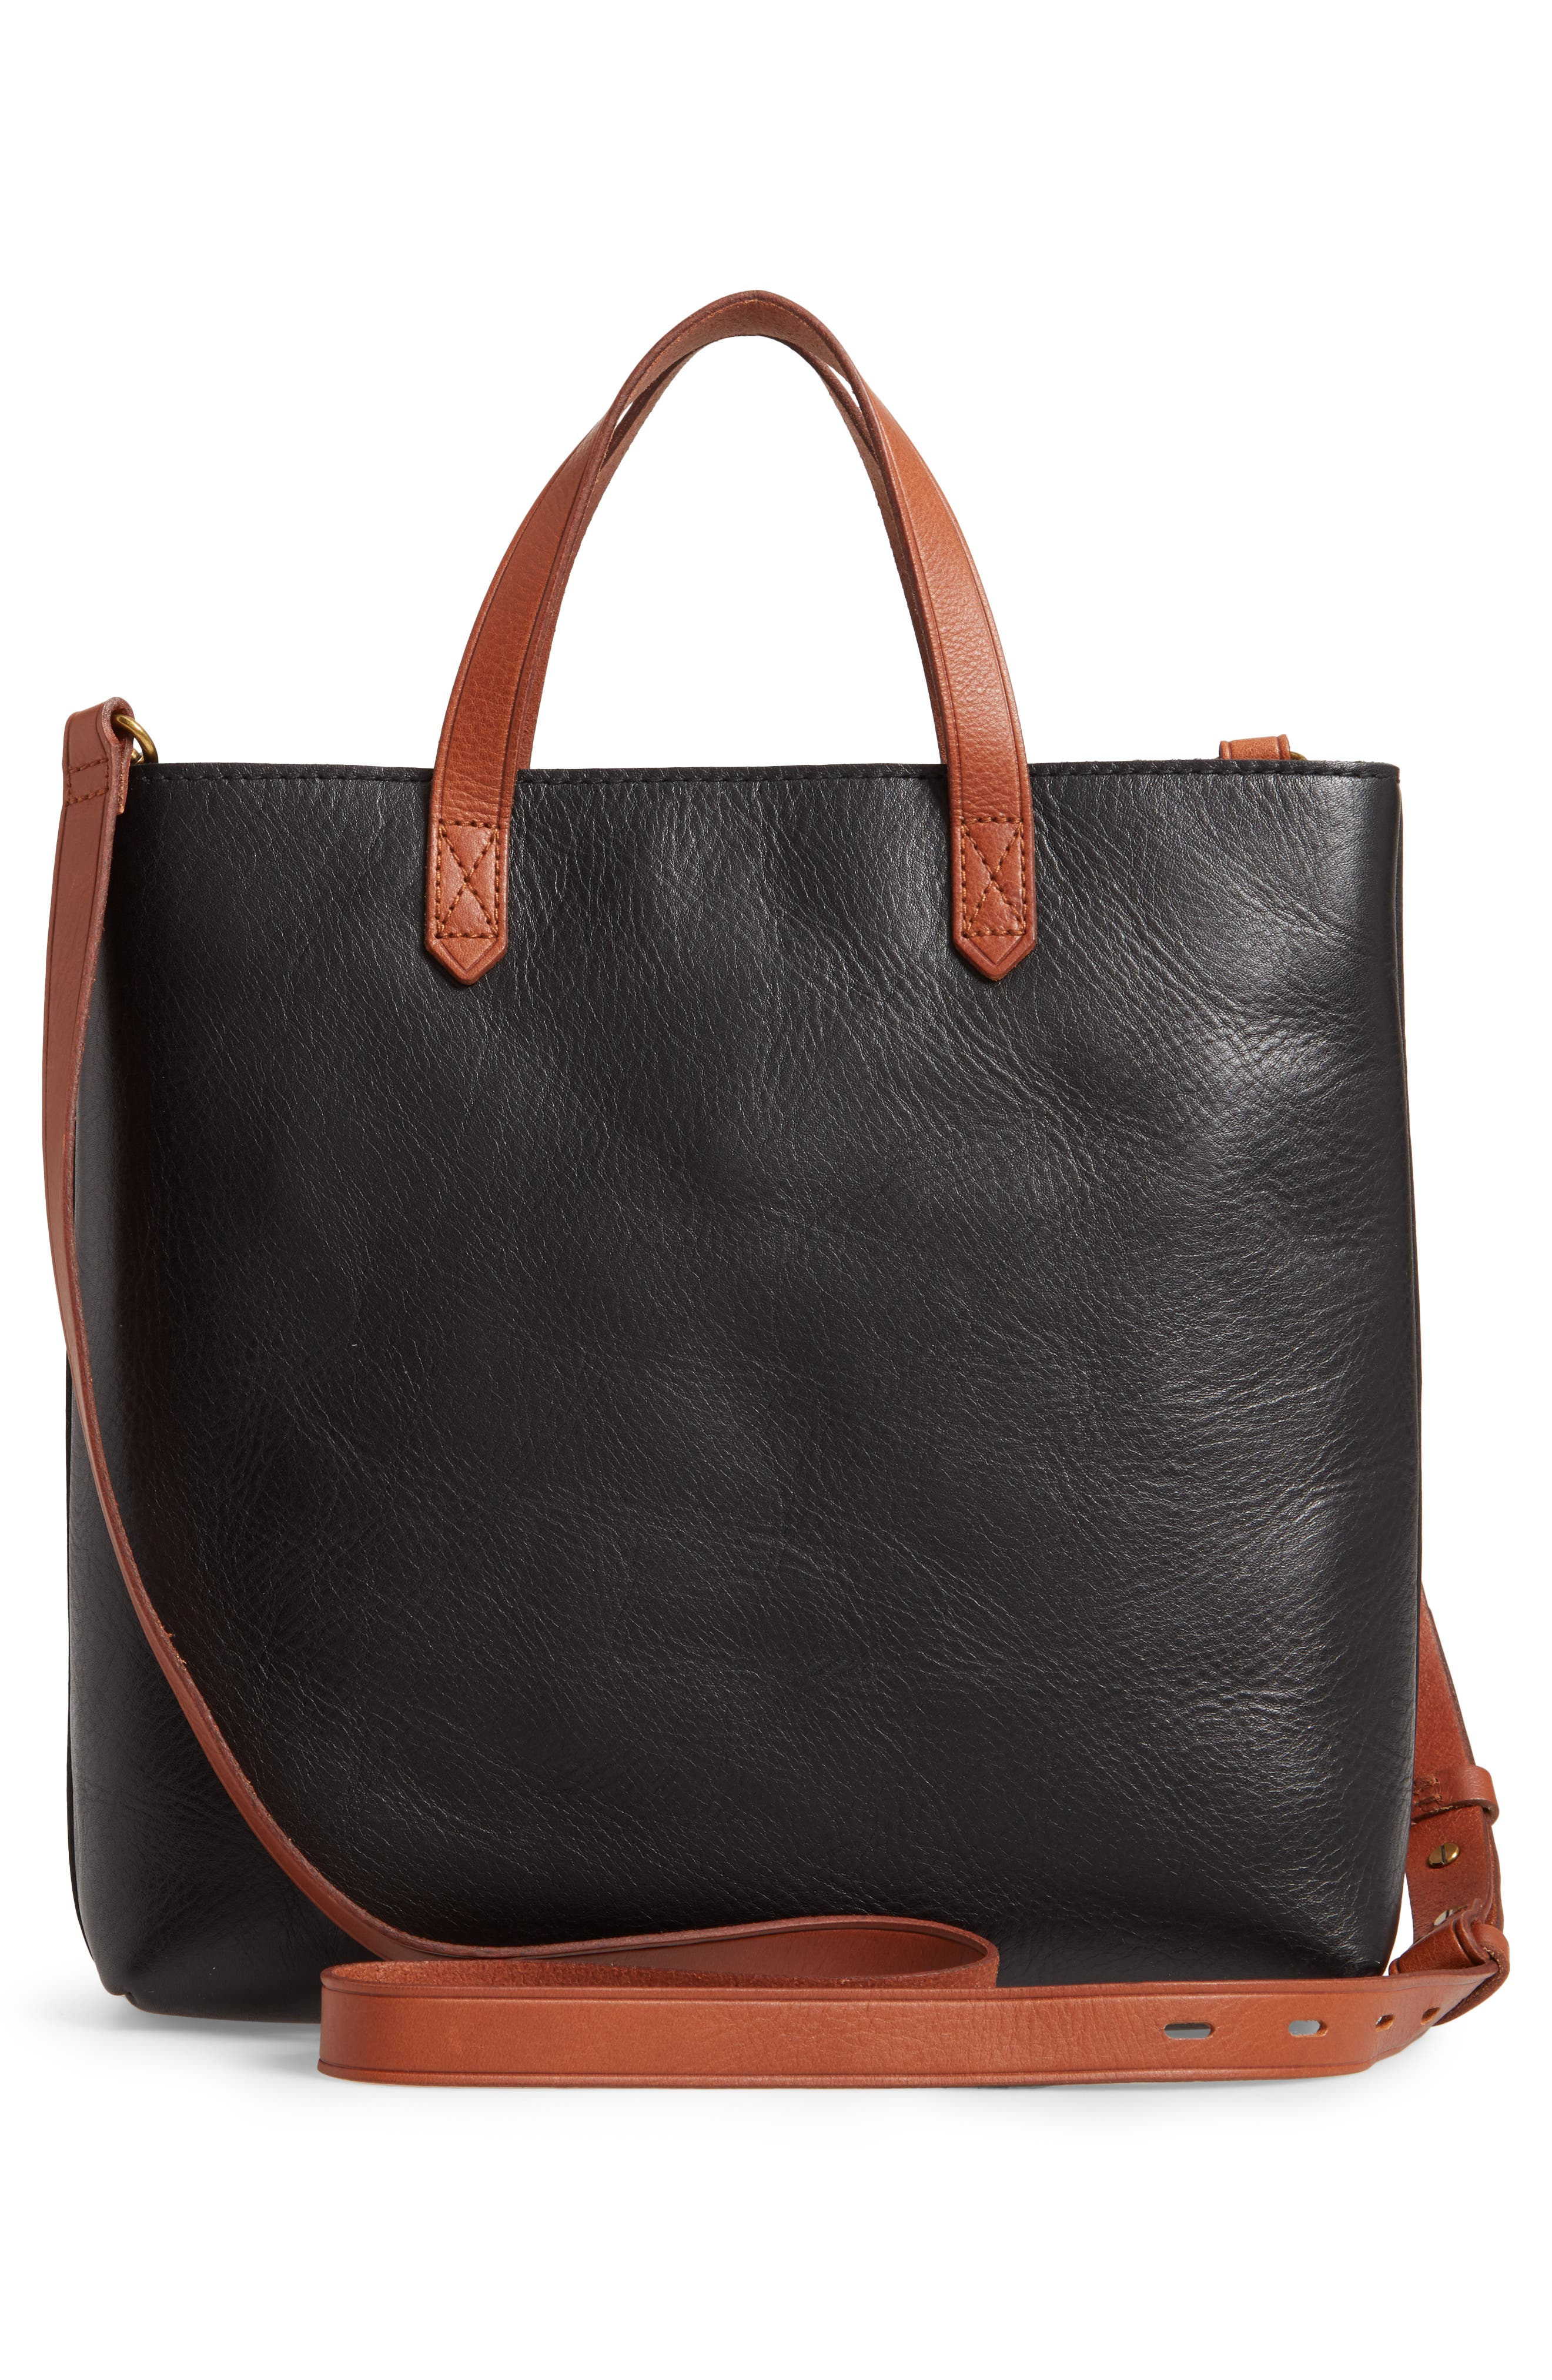 Small Transport Leather Crossbody Tote,                             Alternate thumbnail 3, color,                             TRUE BLACK W/ BROWN